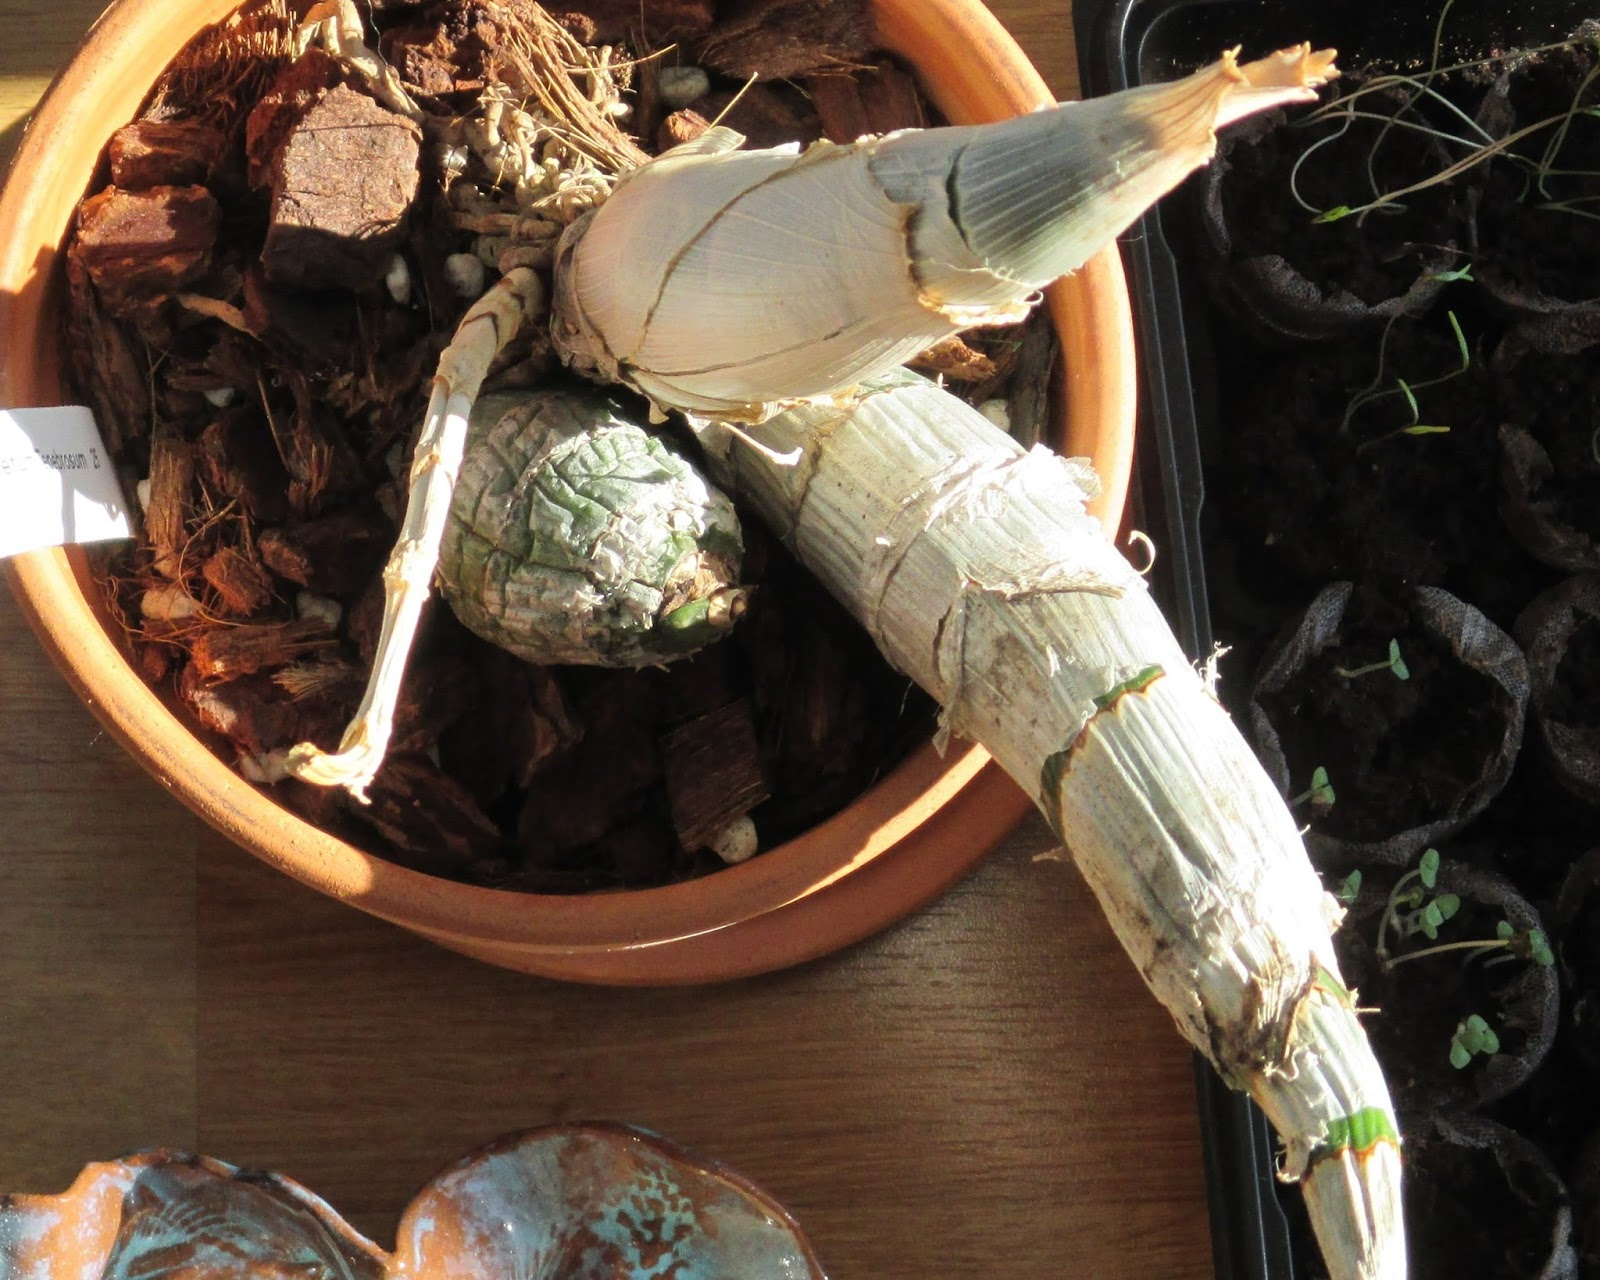 My life among the lithops and other strange plants catasetum thats what makes these few days in early summer so special when cat finally shows her strange black flowers with the golden centers everyone is amazed mightylinksfo